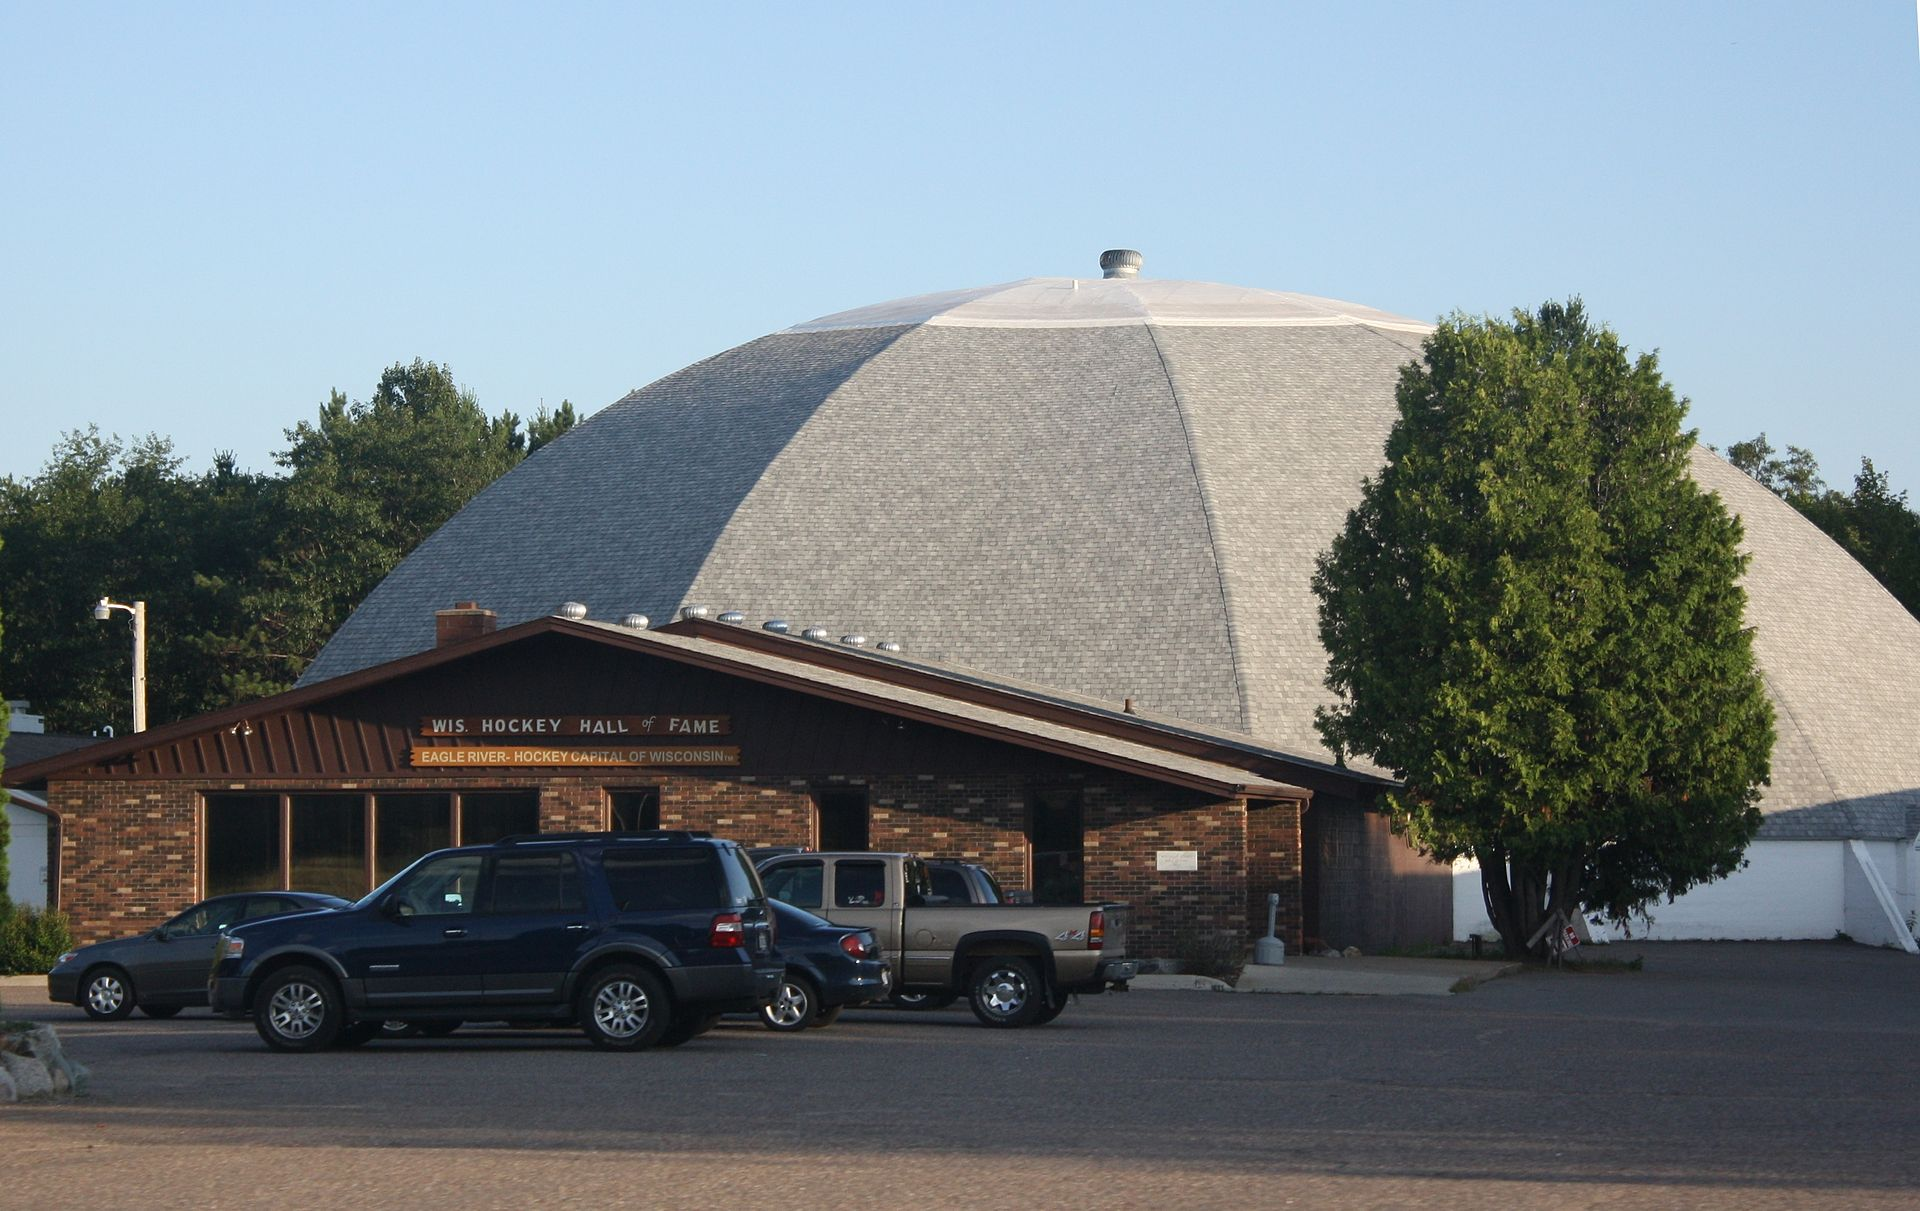 Eagle River Stadium and Wisconsin Hockey Hall of Fame